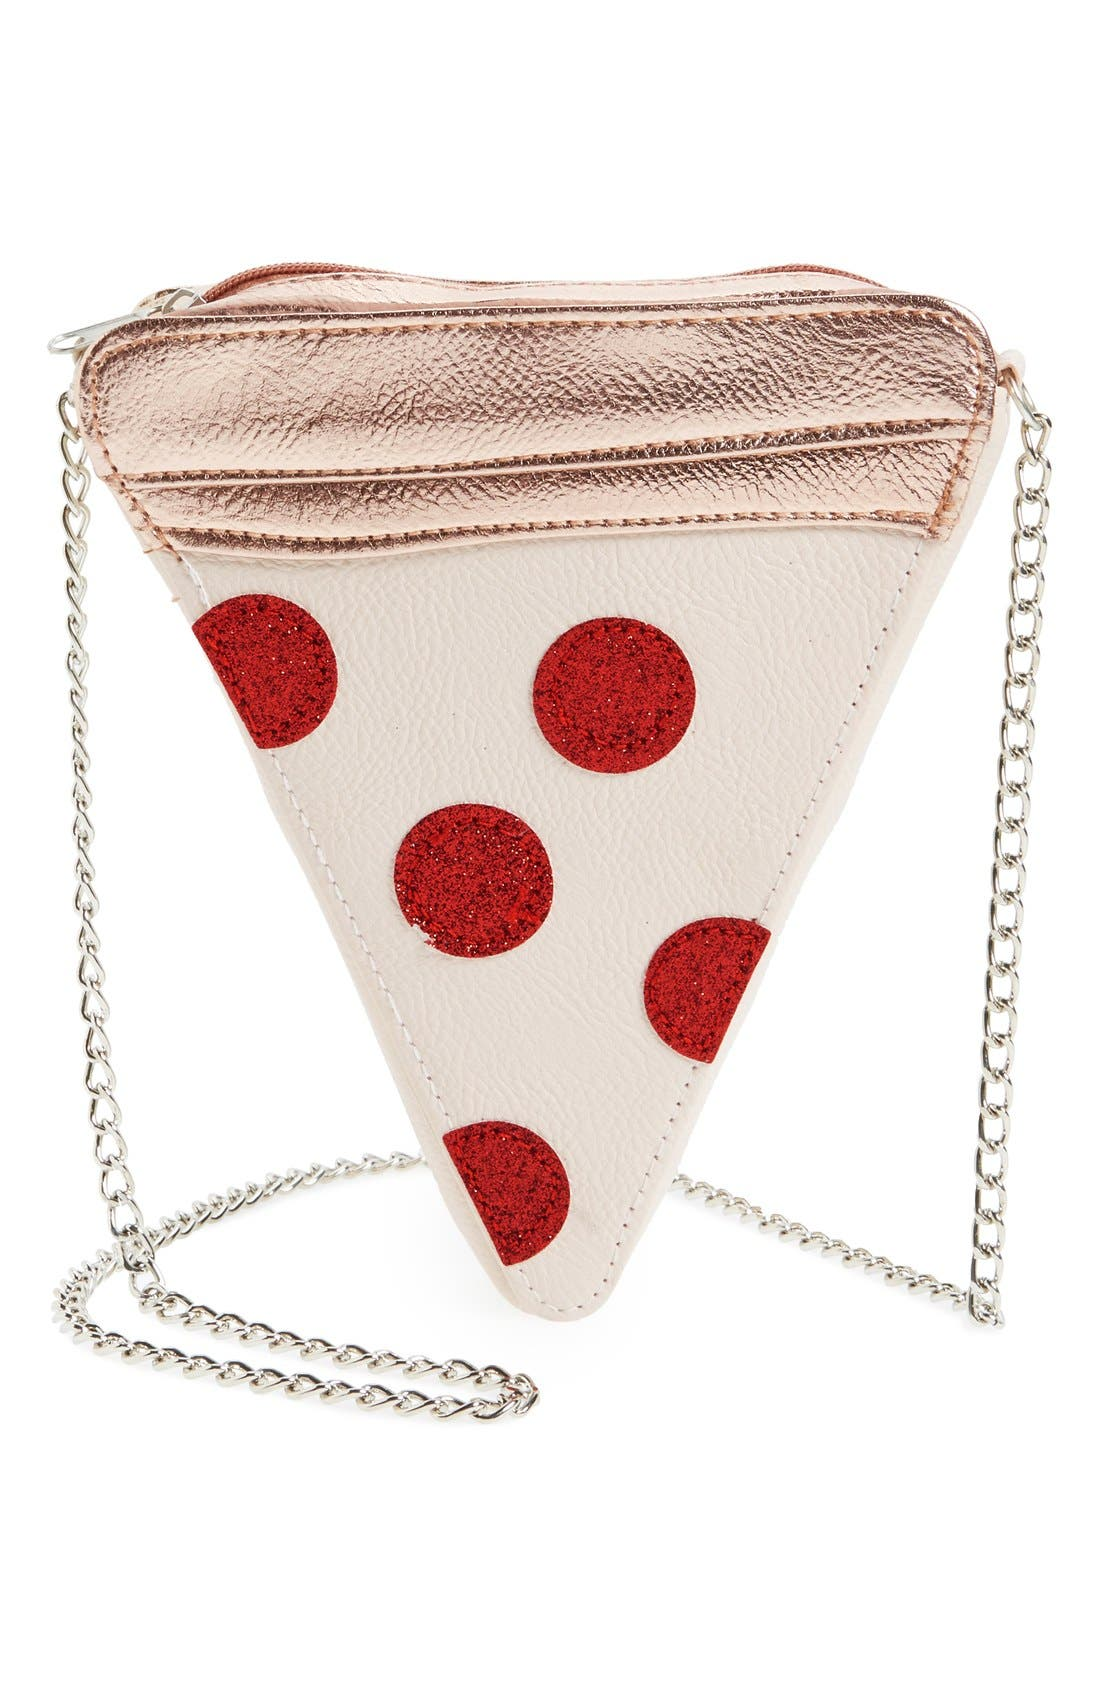 Capelli of New York 'Pizza' Crossbody Bag (Girls)